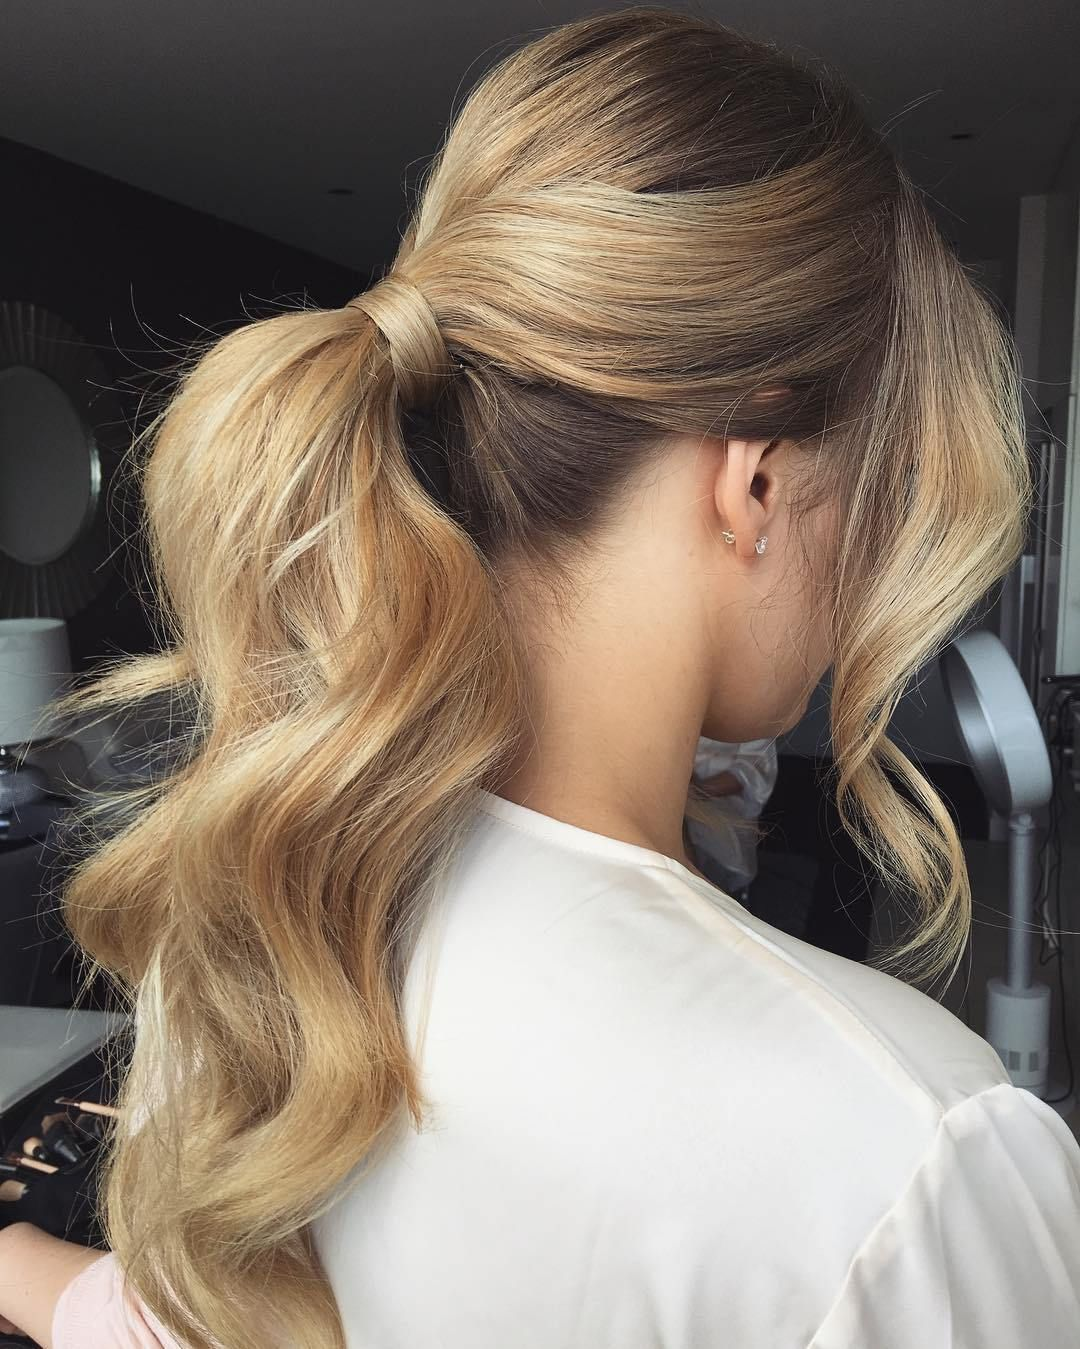 63 Perfect Hairdo Ideas For A Flawless Wedding Hairstyle: 40 Irresistible Hairstyles For Brides And Bridesmaids